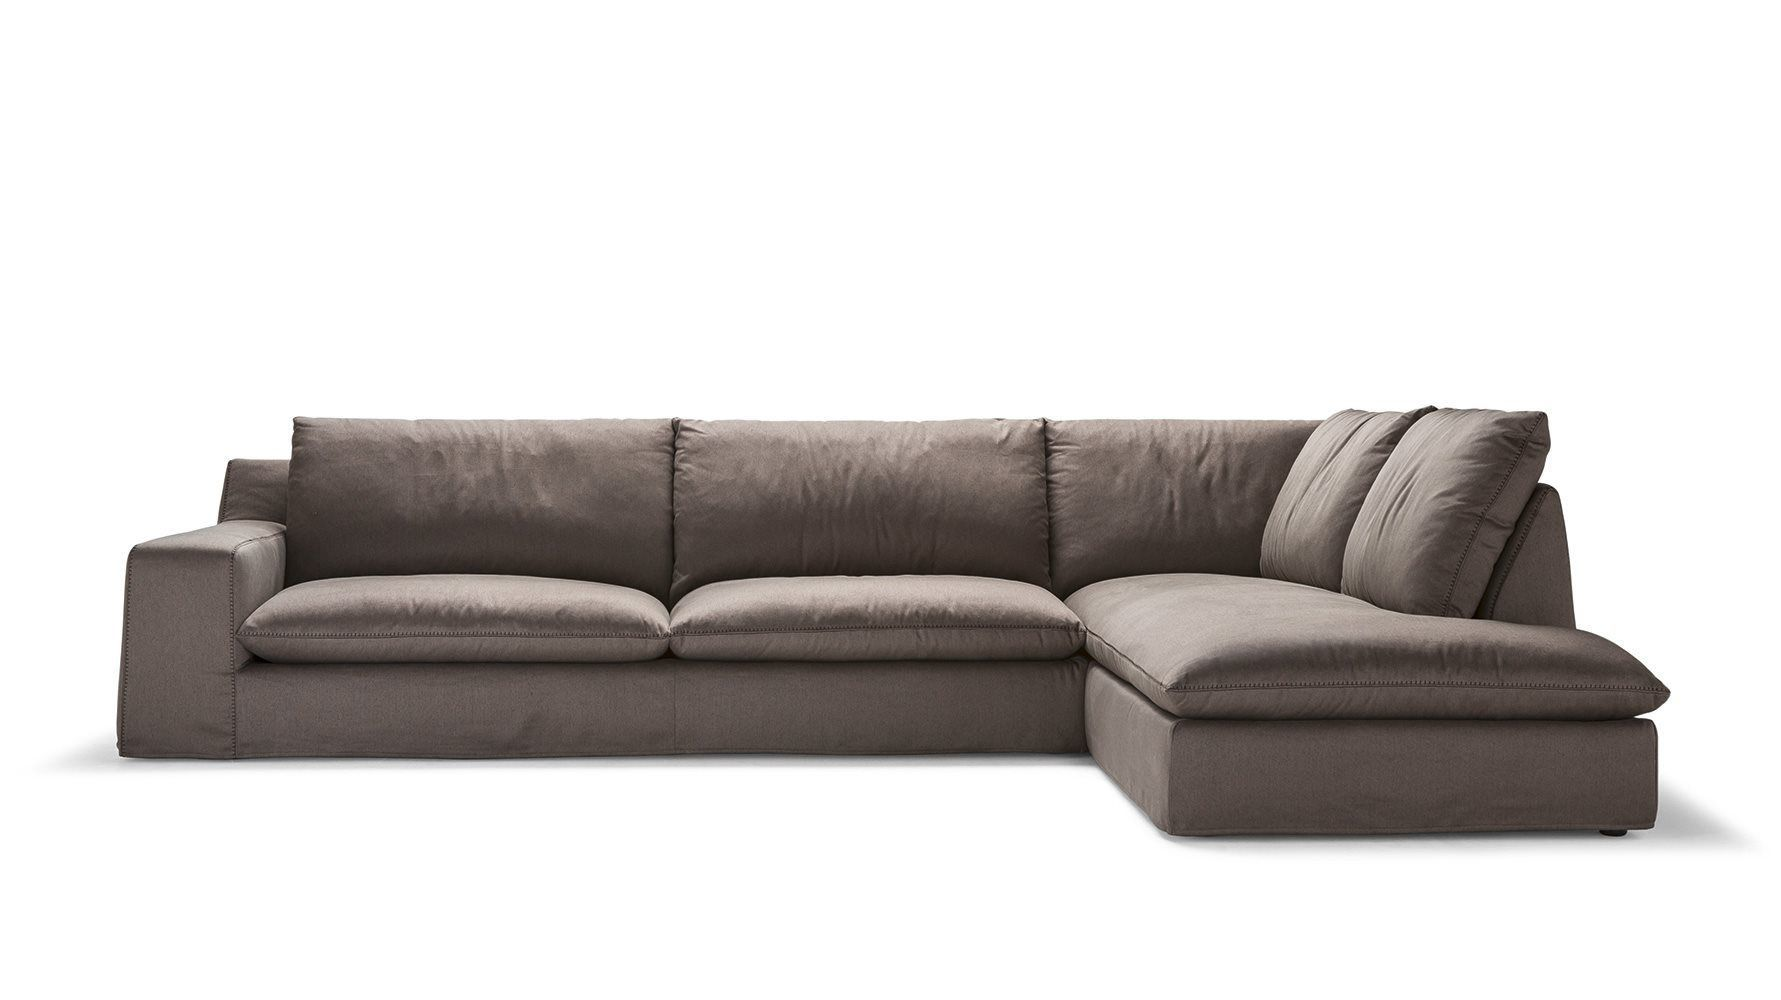 ... Modular Sofa / Contemporary / Leather / Fabric